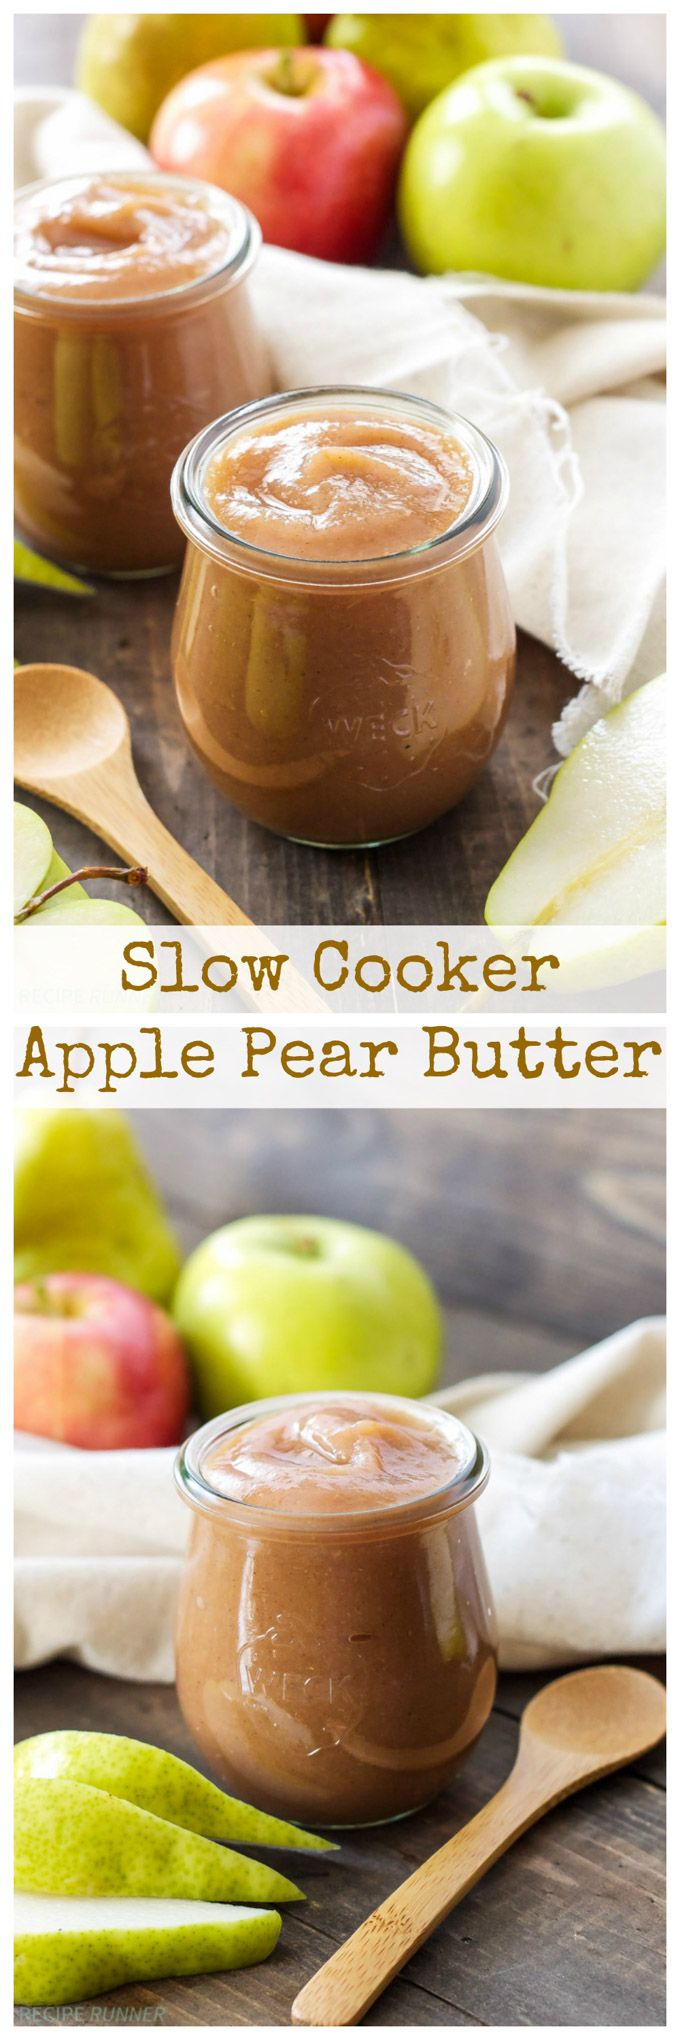 Slow Cooker Apple Pear Butter | This easy to make fall condiment is rich in flavor and perfect for both sweet and savory dishes!